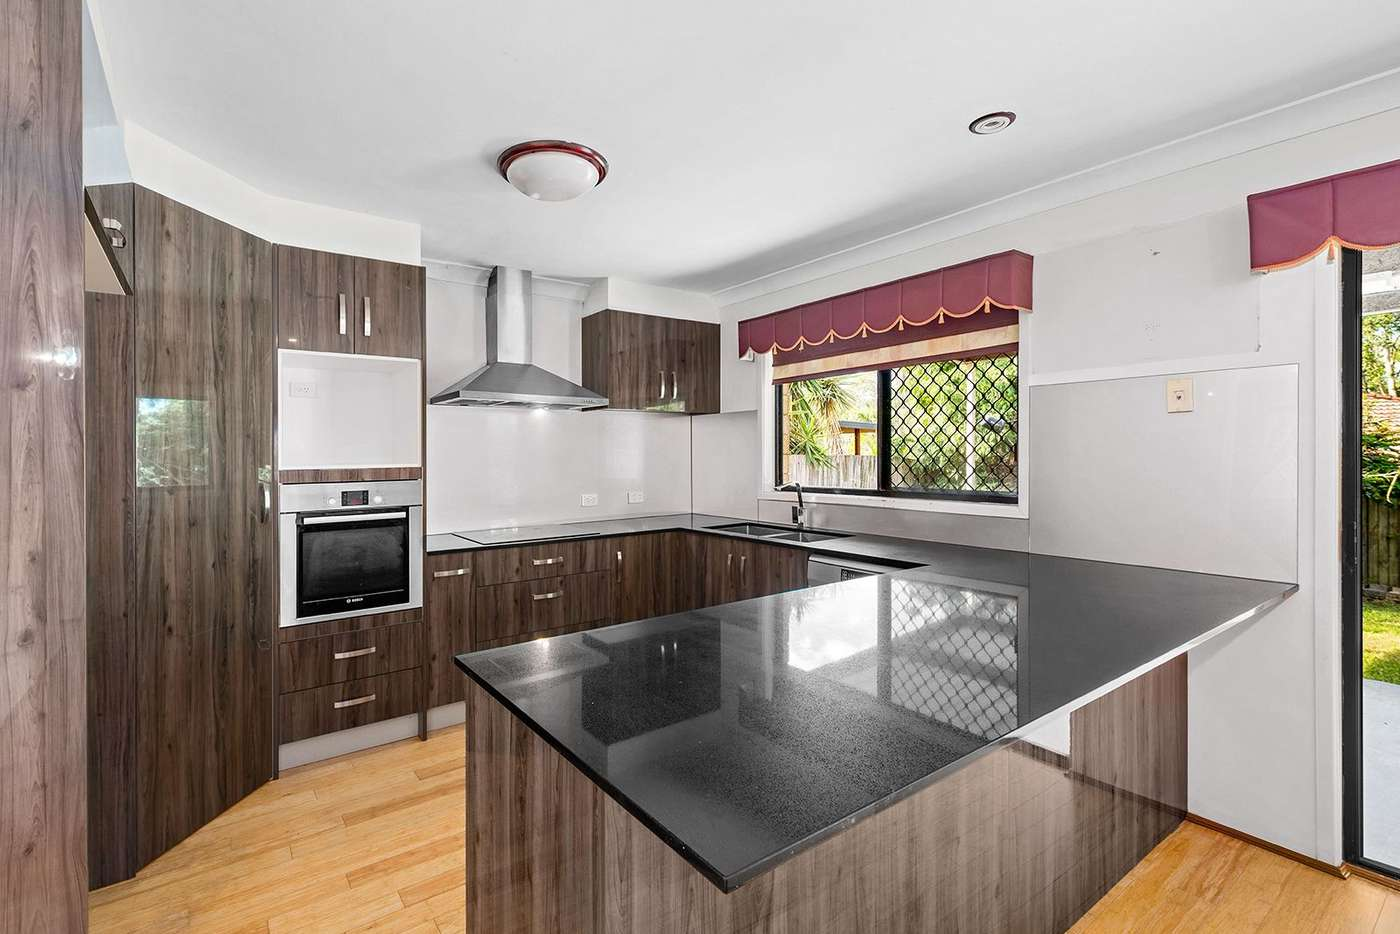 Main view of Homely house listing, 54 Gleneagles Crescent, Oxley QLD 4075